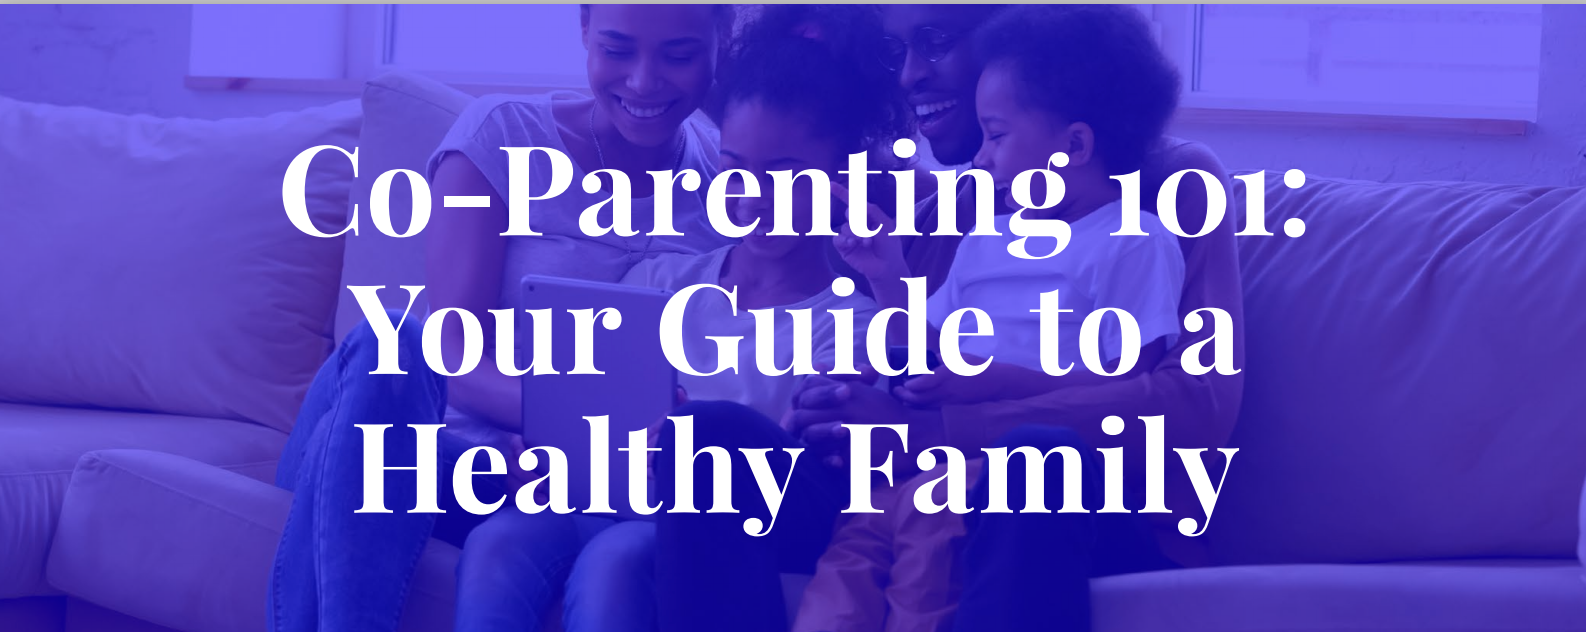 Co-Parenting 101: Your Guide to a Healthy Family; image courtesy of author.